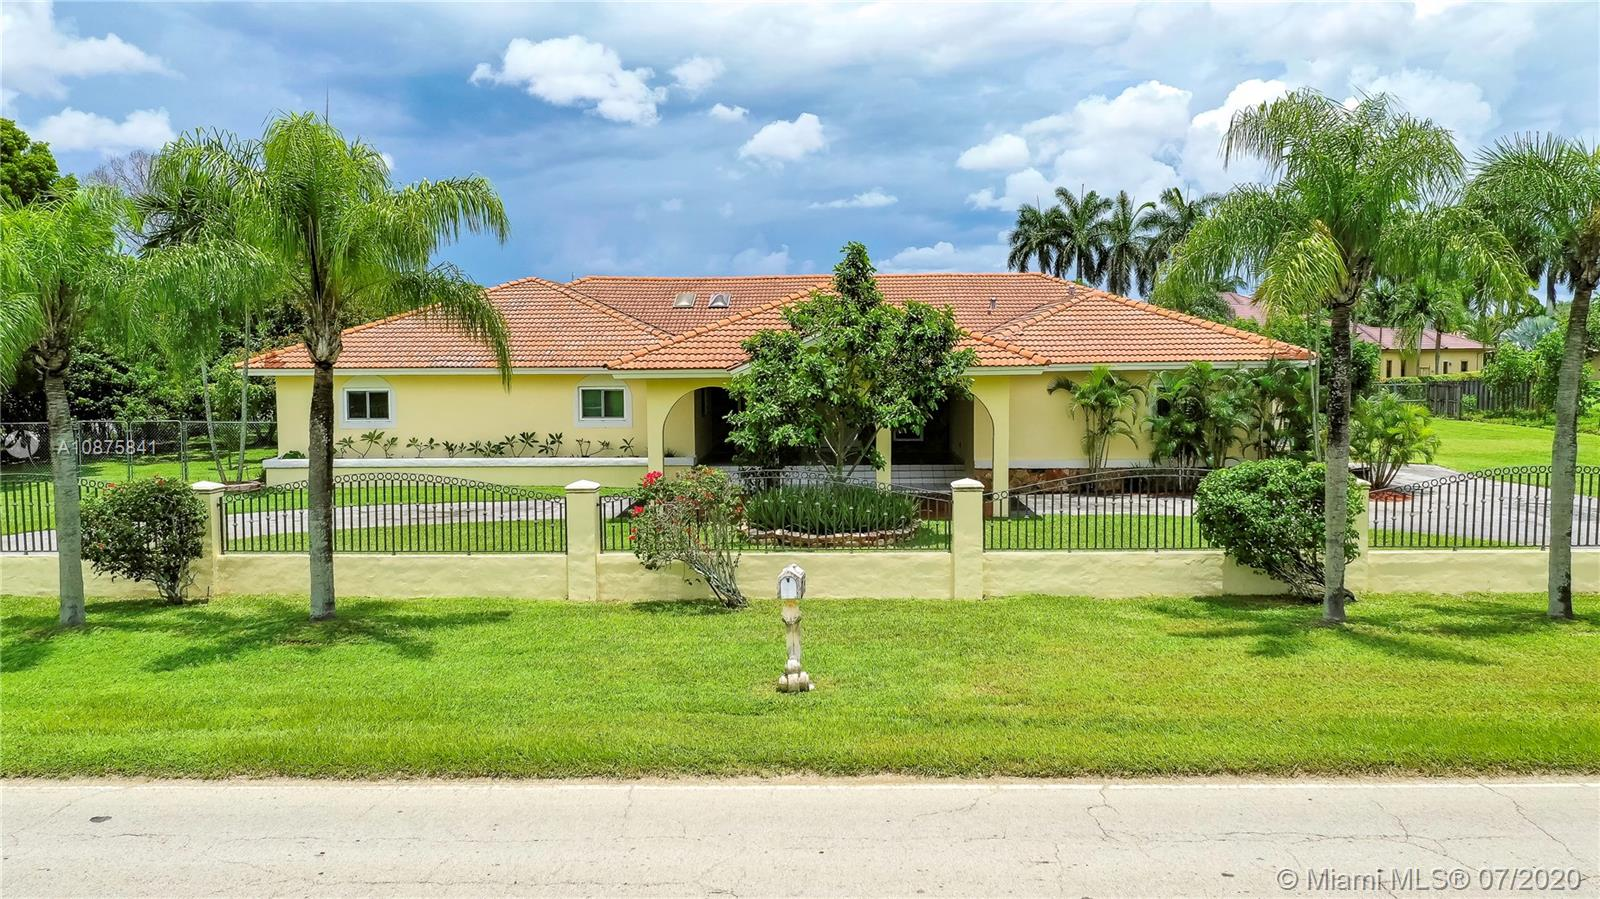 19351 SW 296 St Property Photo - Homestead, FL real estate listing